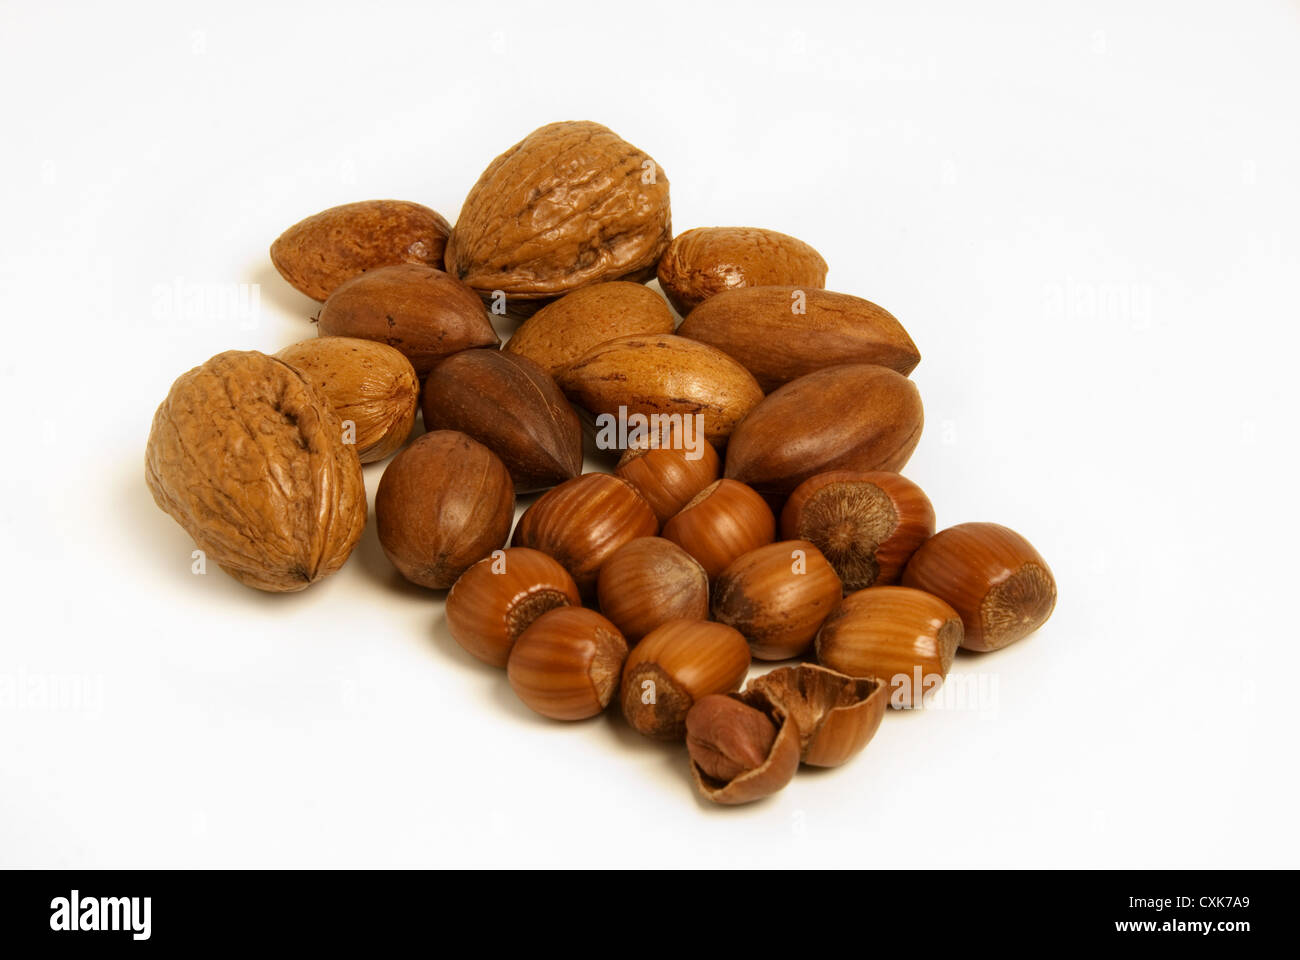 A mix of nuts - Walnuts, hazel and pecan nuts on white background. - Stock Image